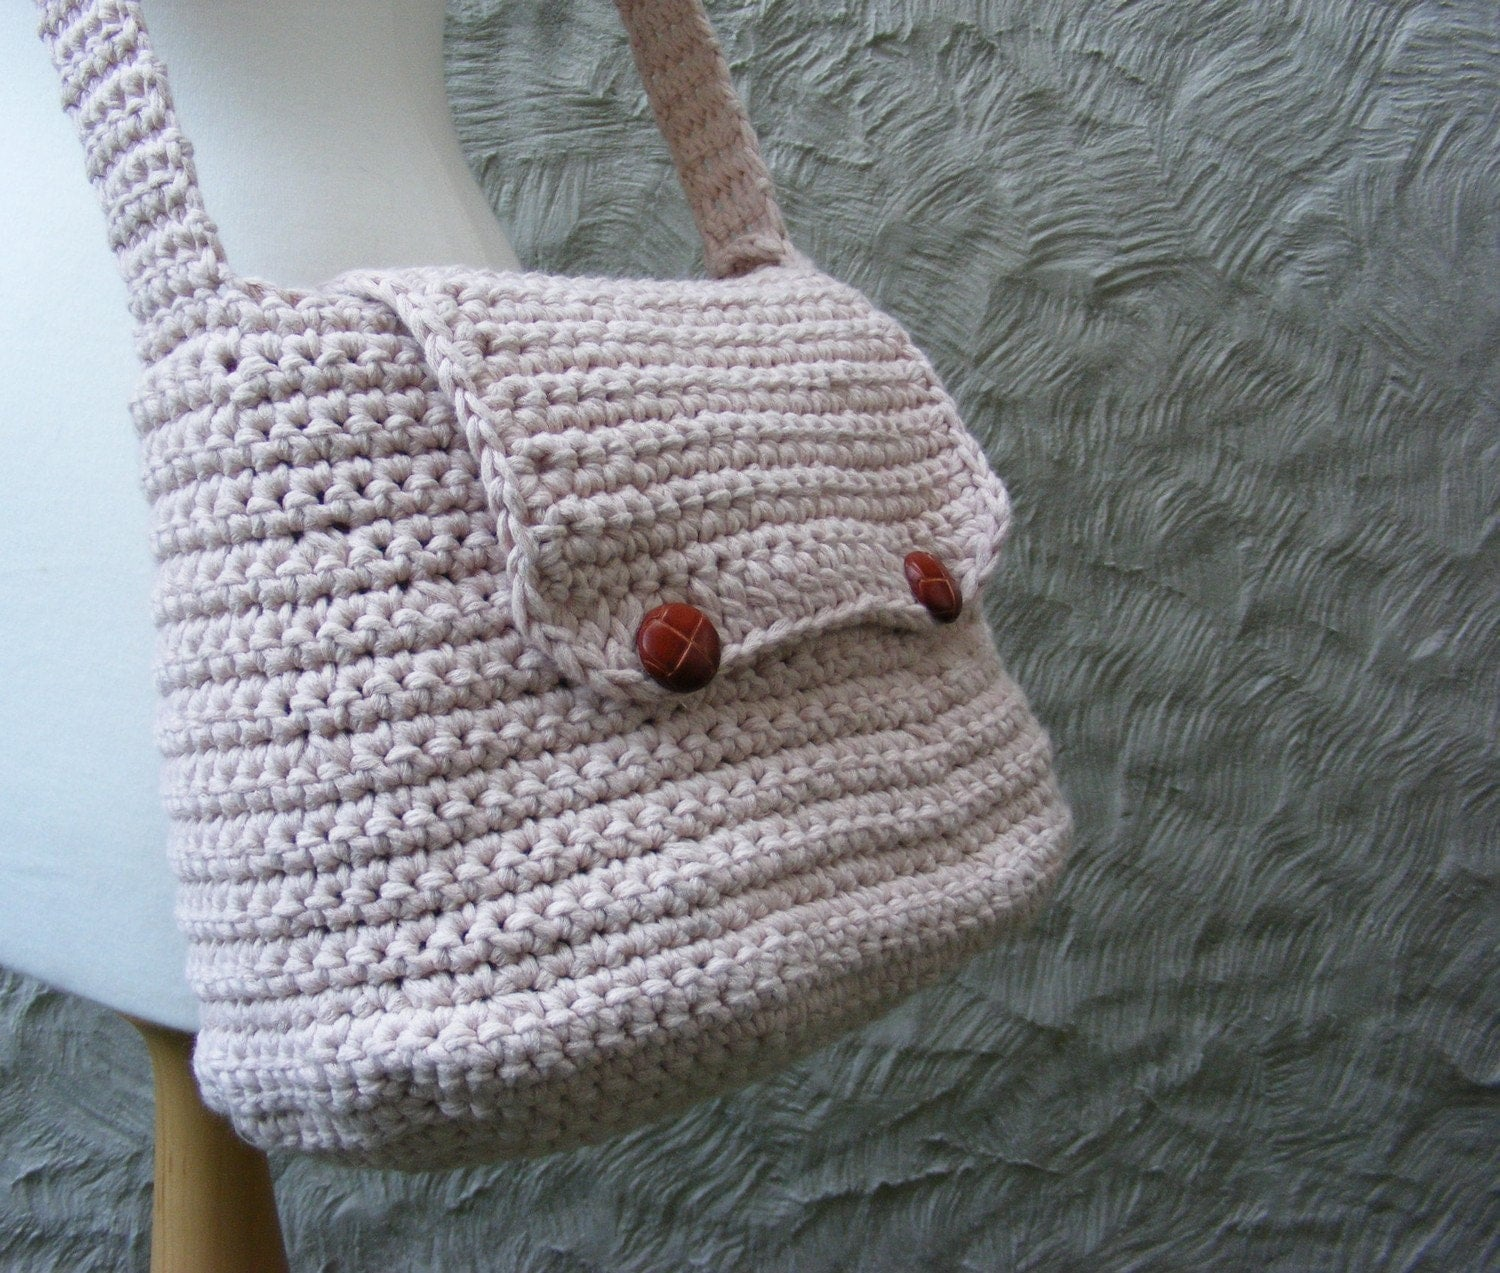 Crochet Patterns Purses : purse patterns free crochet bag and purse patterns little eyelash bag ...